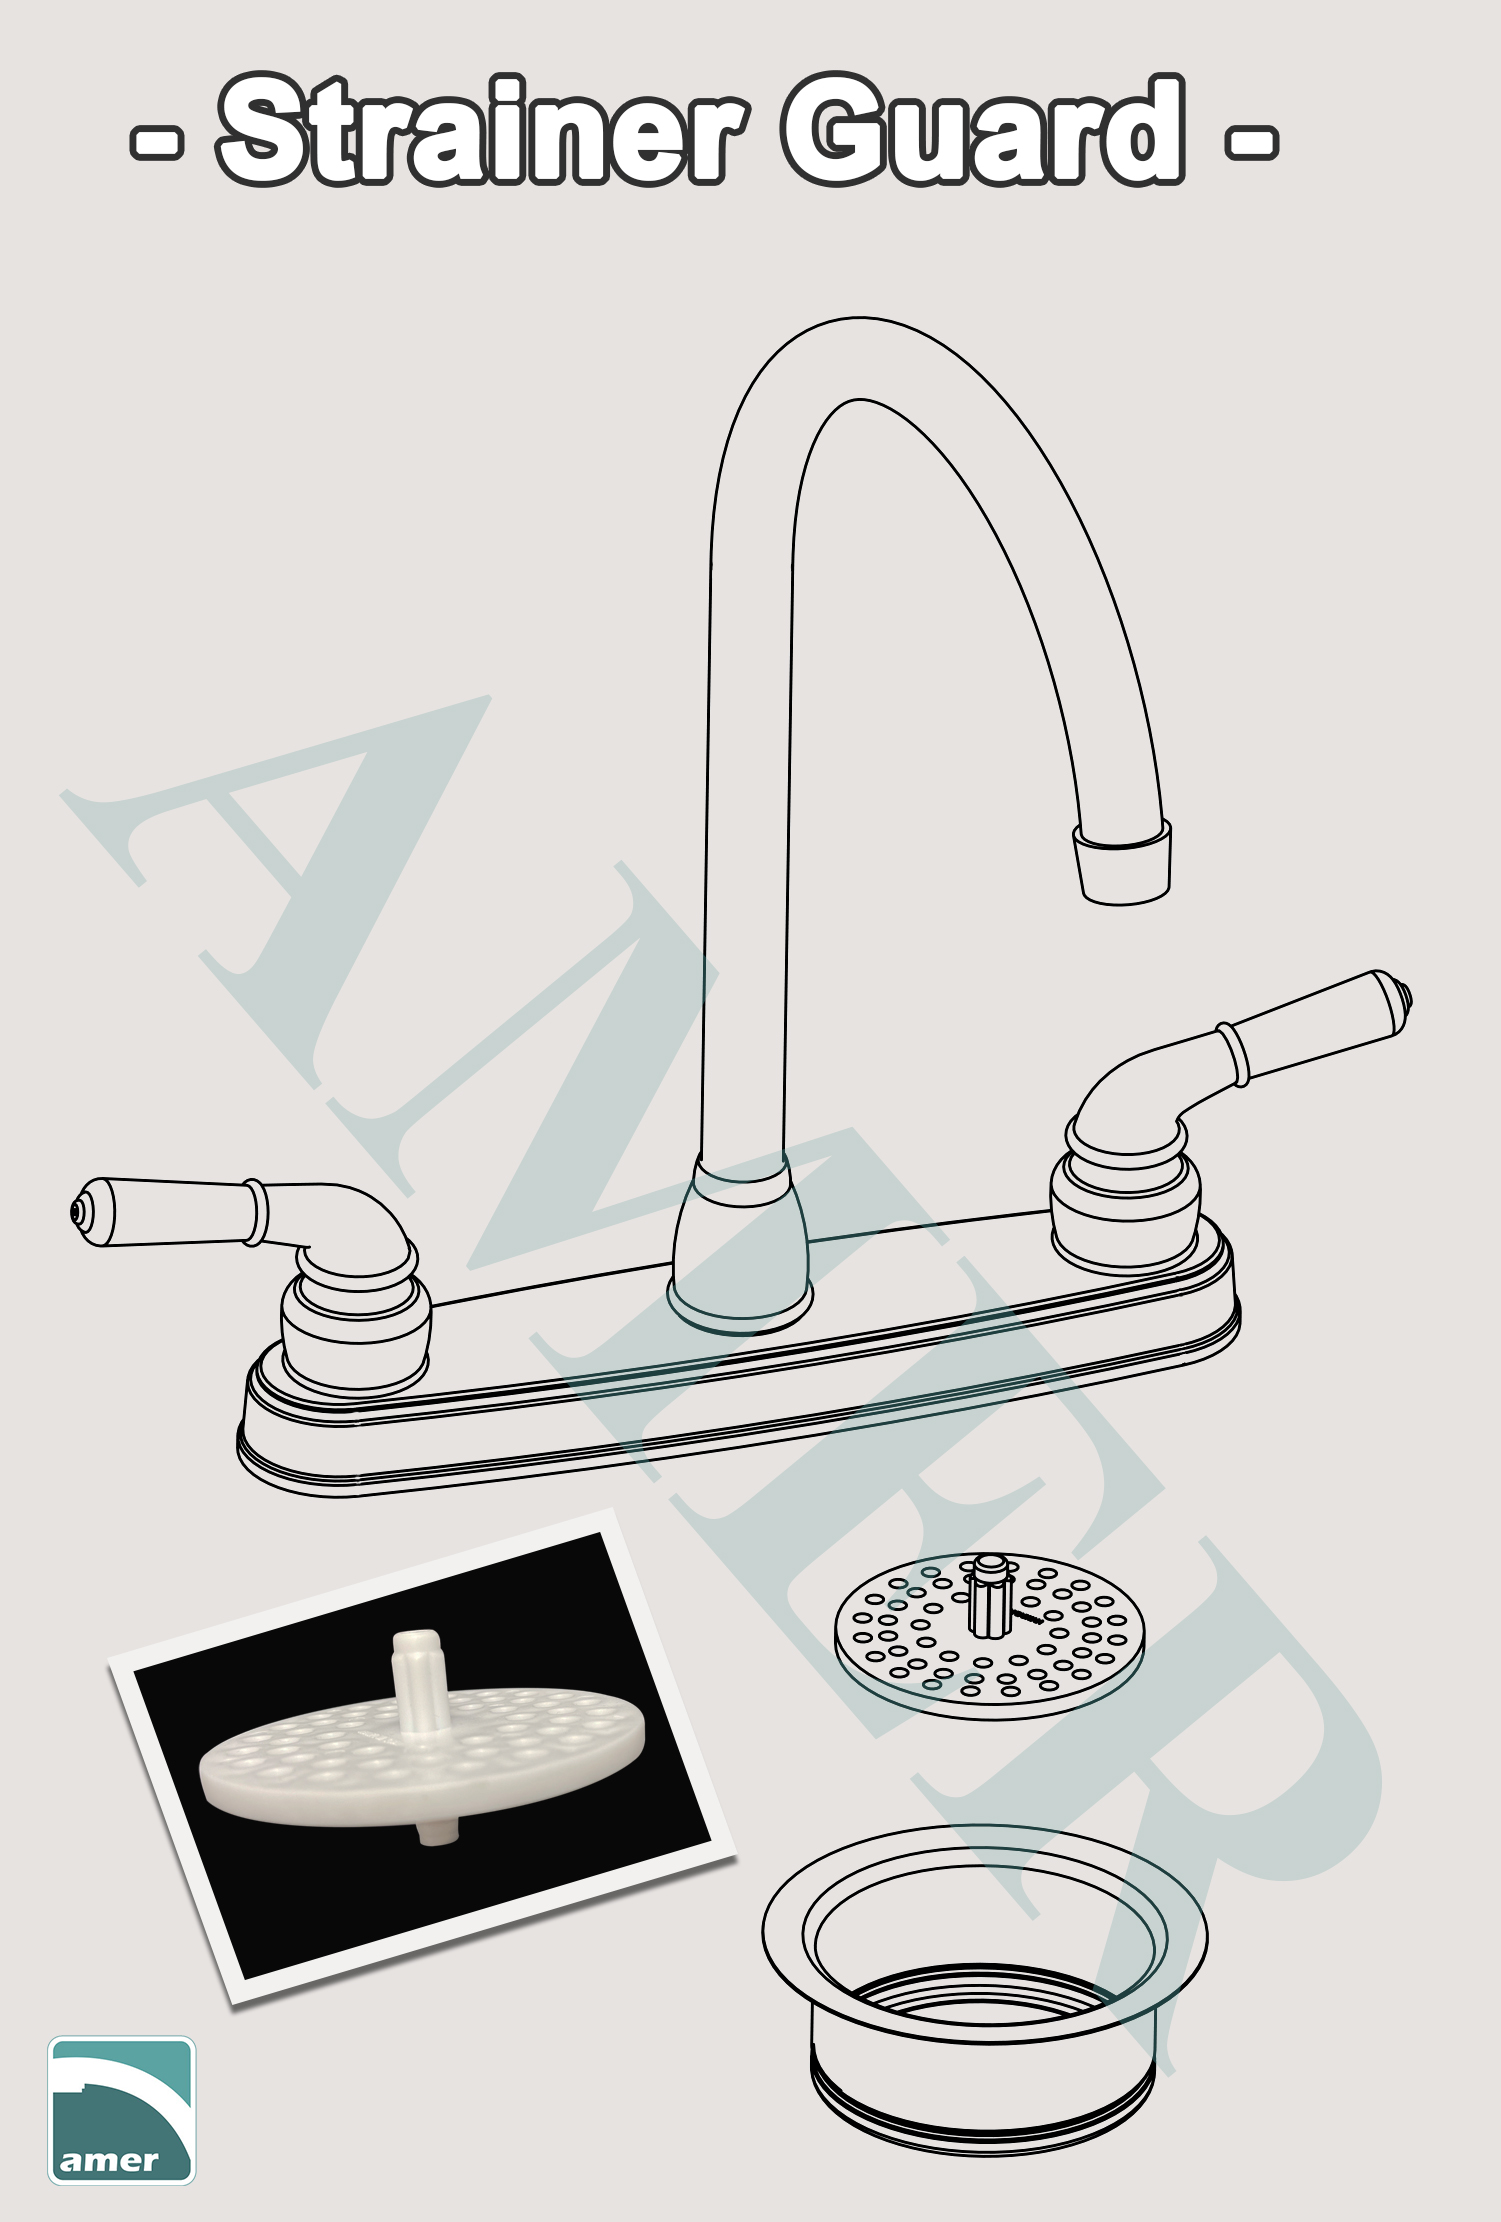 Plastic strainer guard in your kitchen